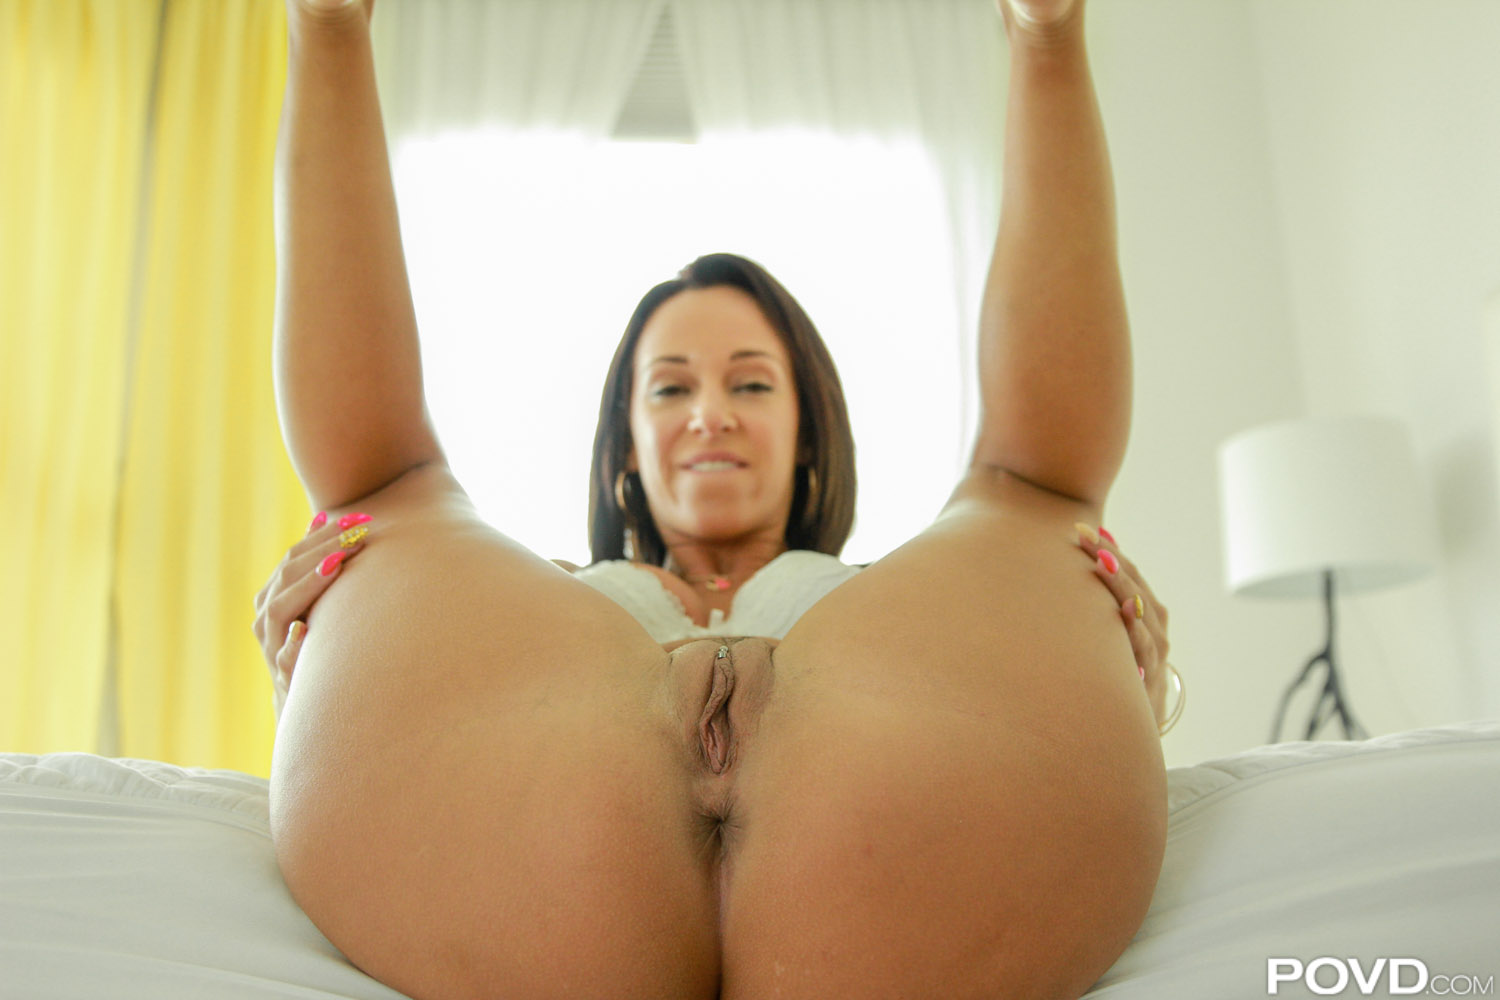 Scared milf with fat ass gets bbc for the first time 2